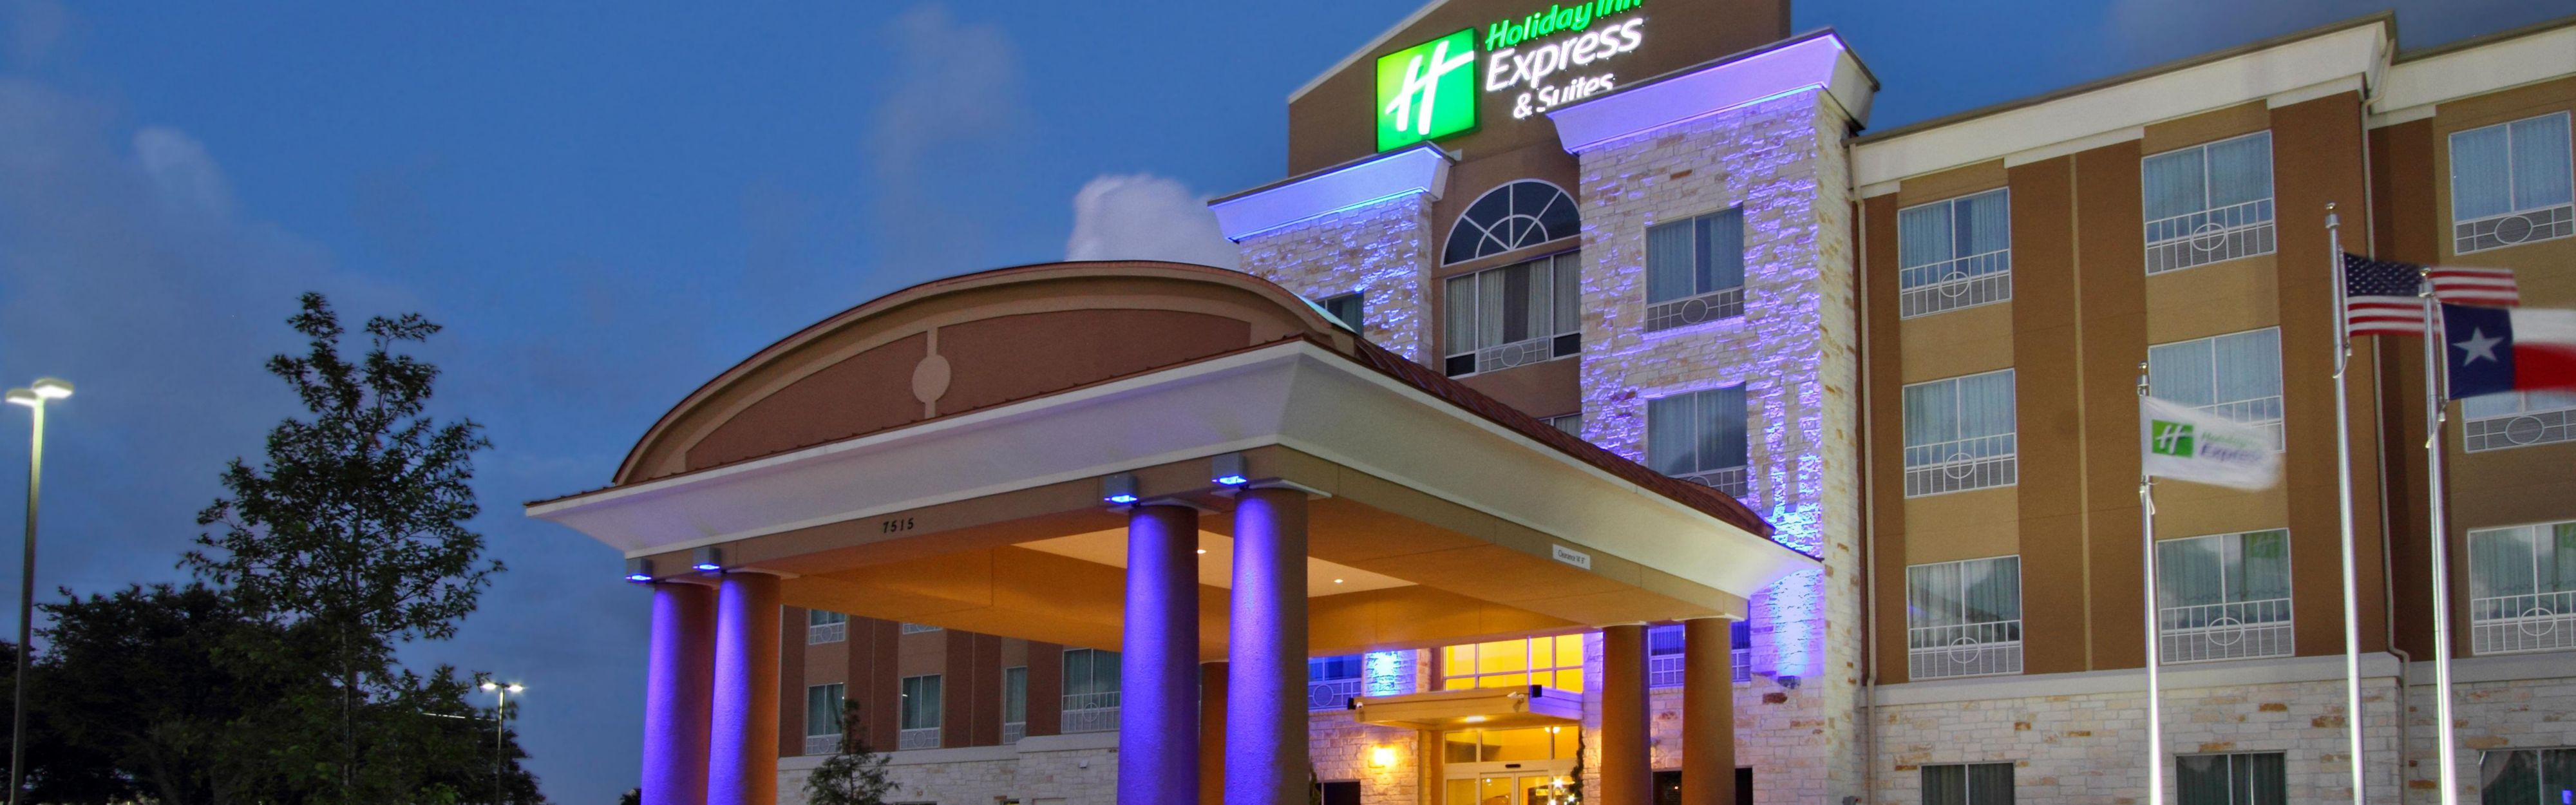 Holiday Inn Express & Suites Houston East - Baytown image 0